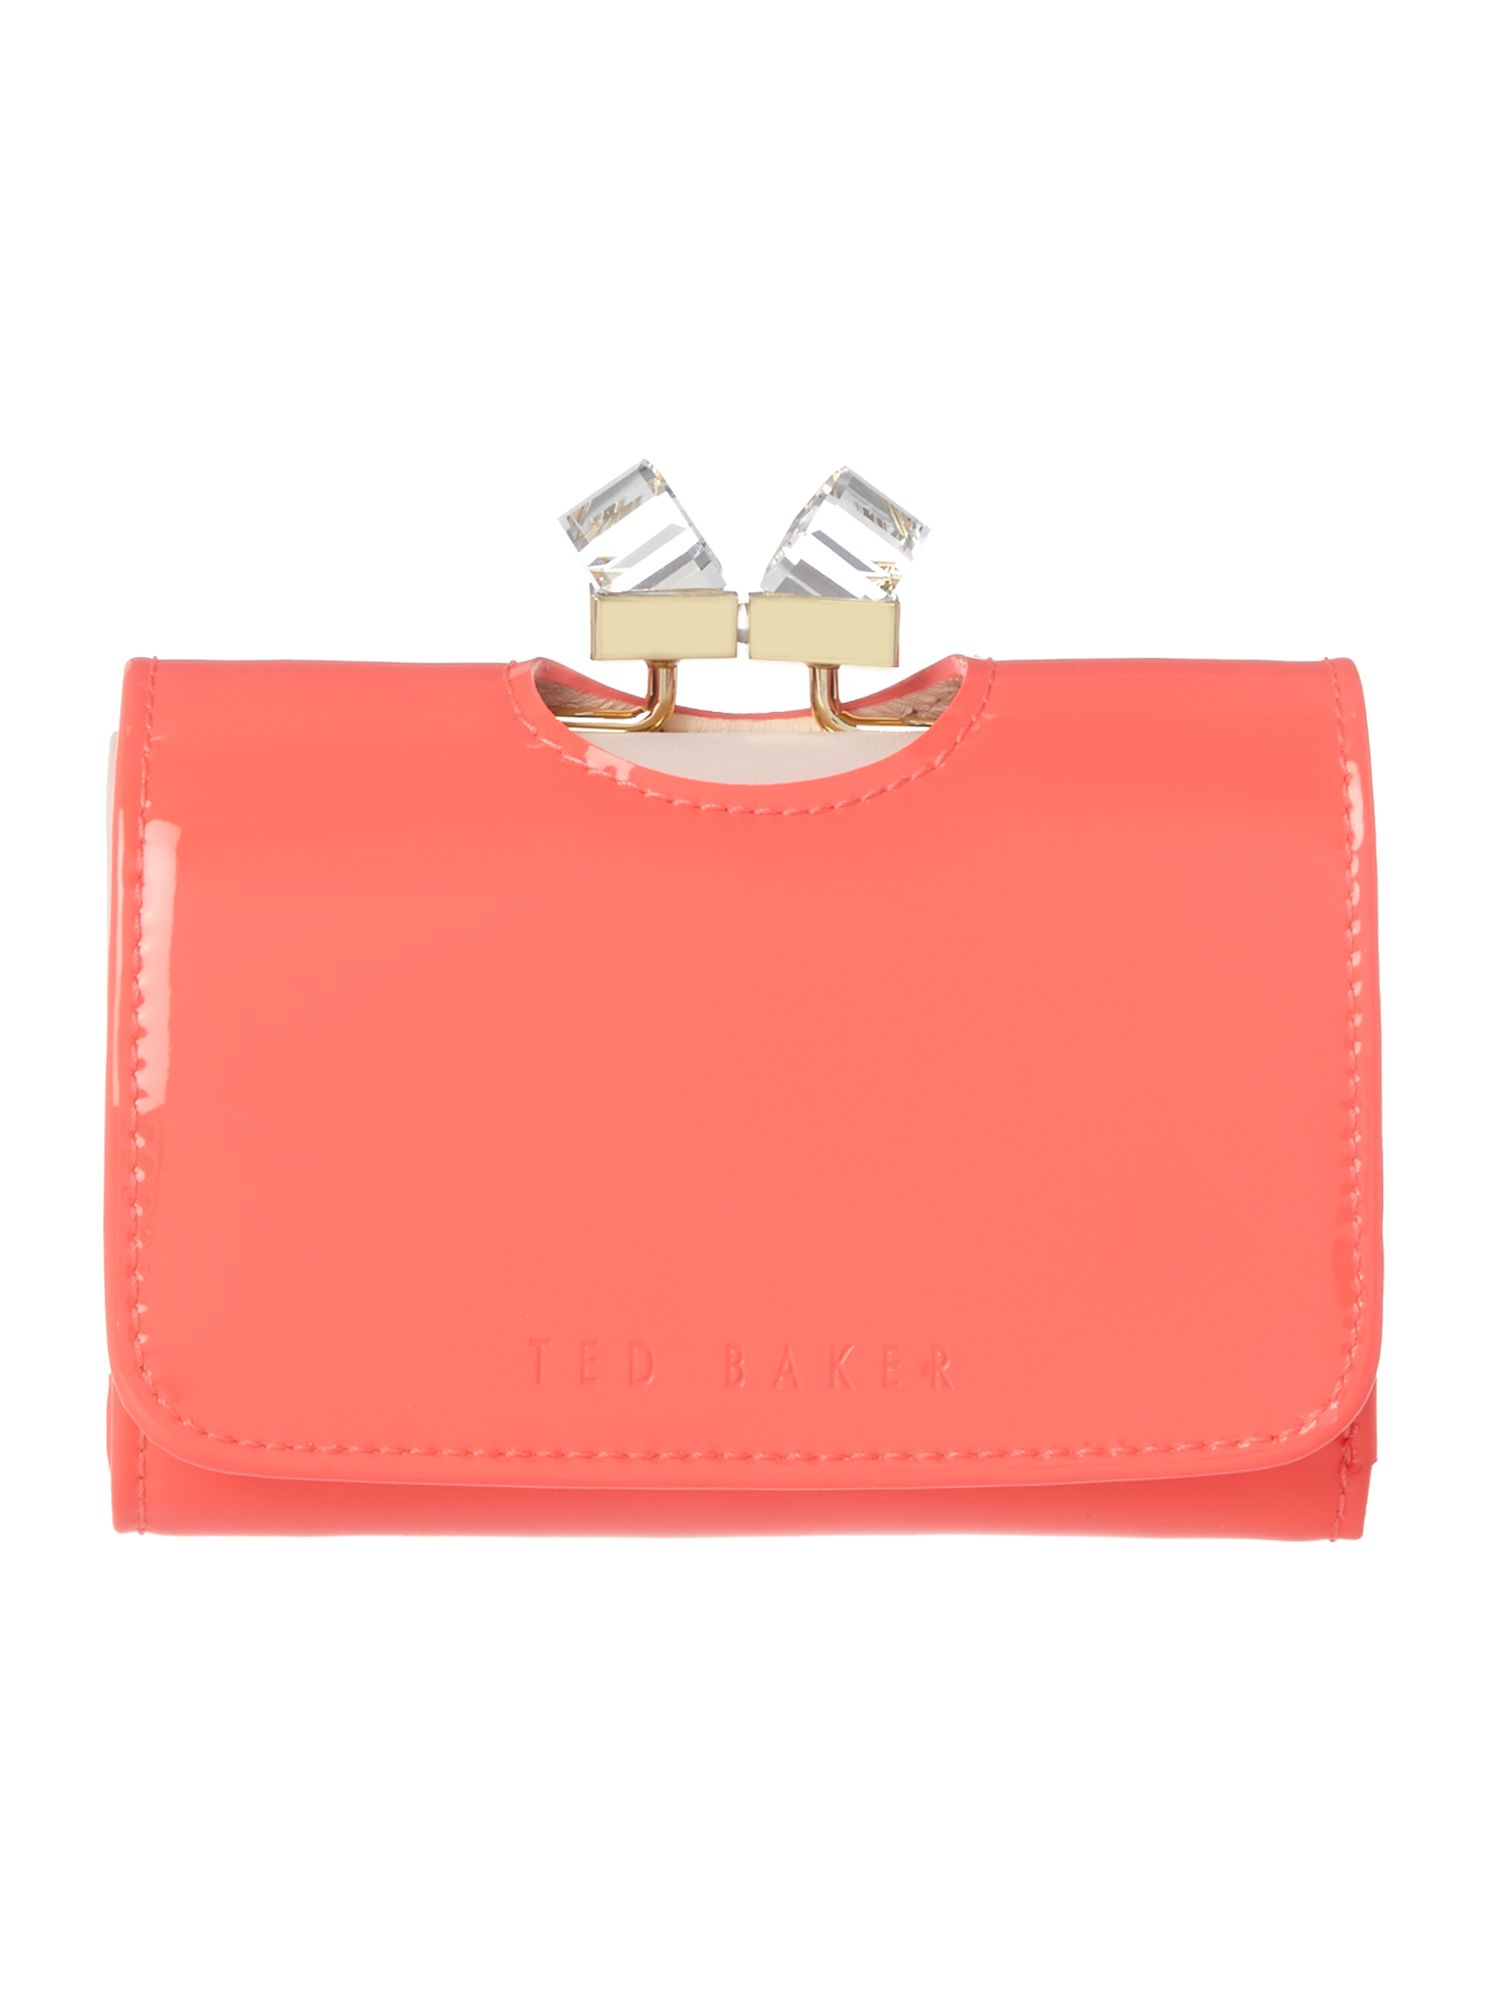 Ted Baker Coral small patent crystal bow flapover purse